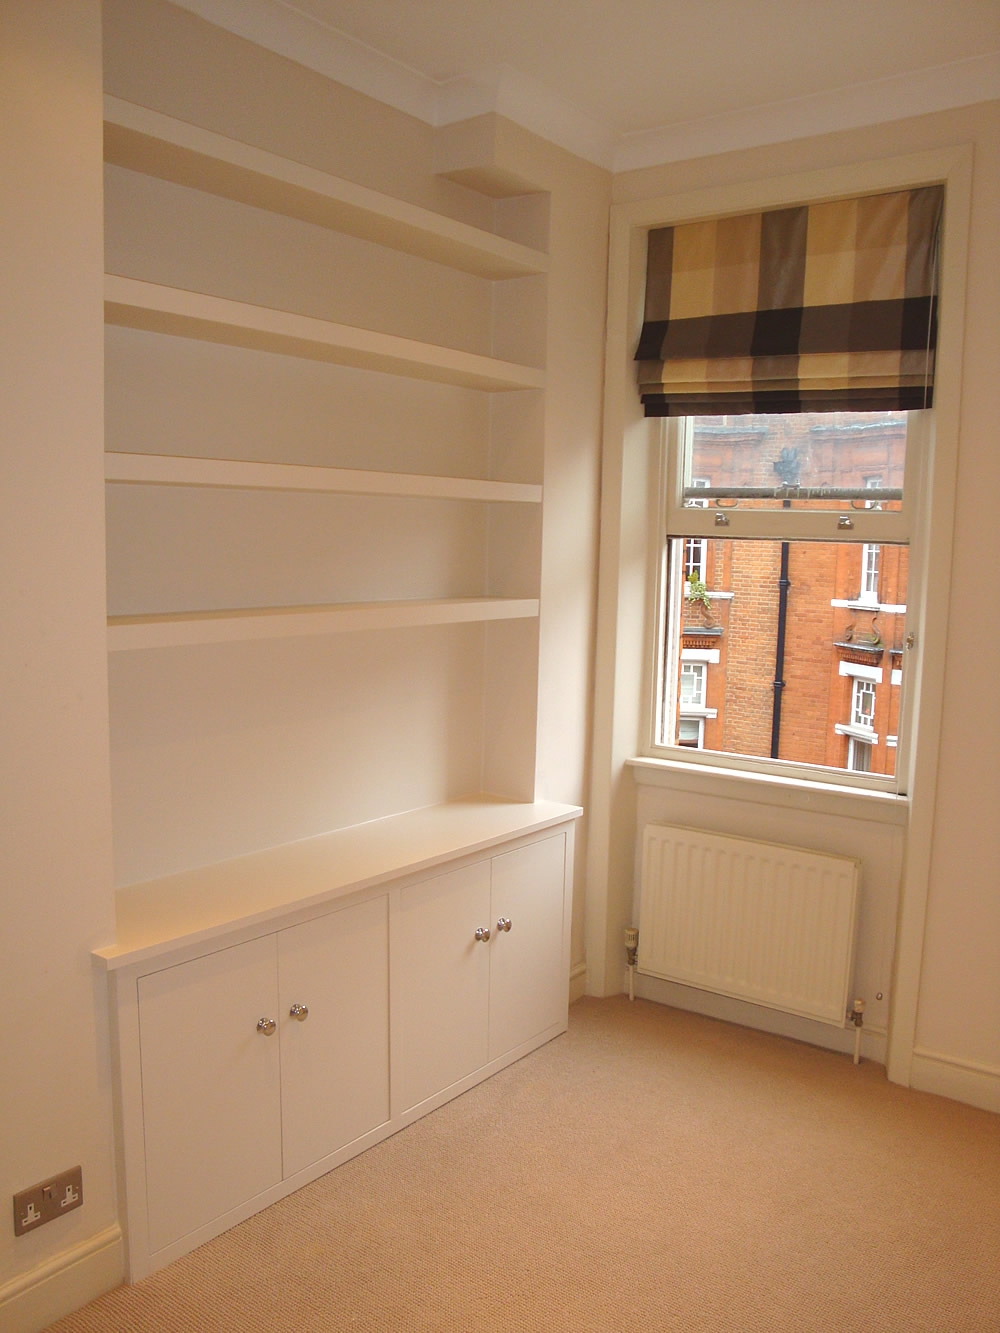 London Carpenter Skilled And Reliable Carpenters In London Uk For Bespoke Cupboard (#8 of 15)